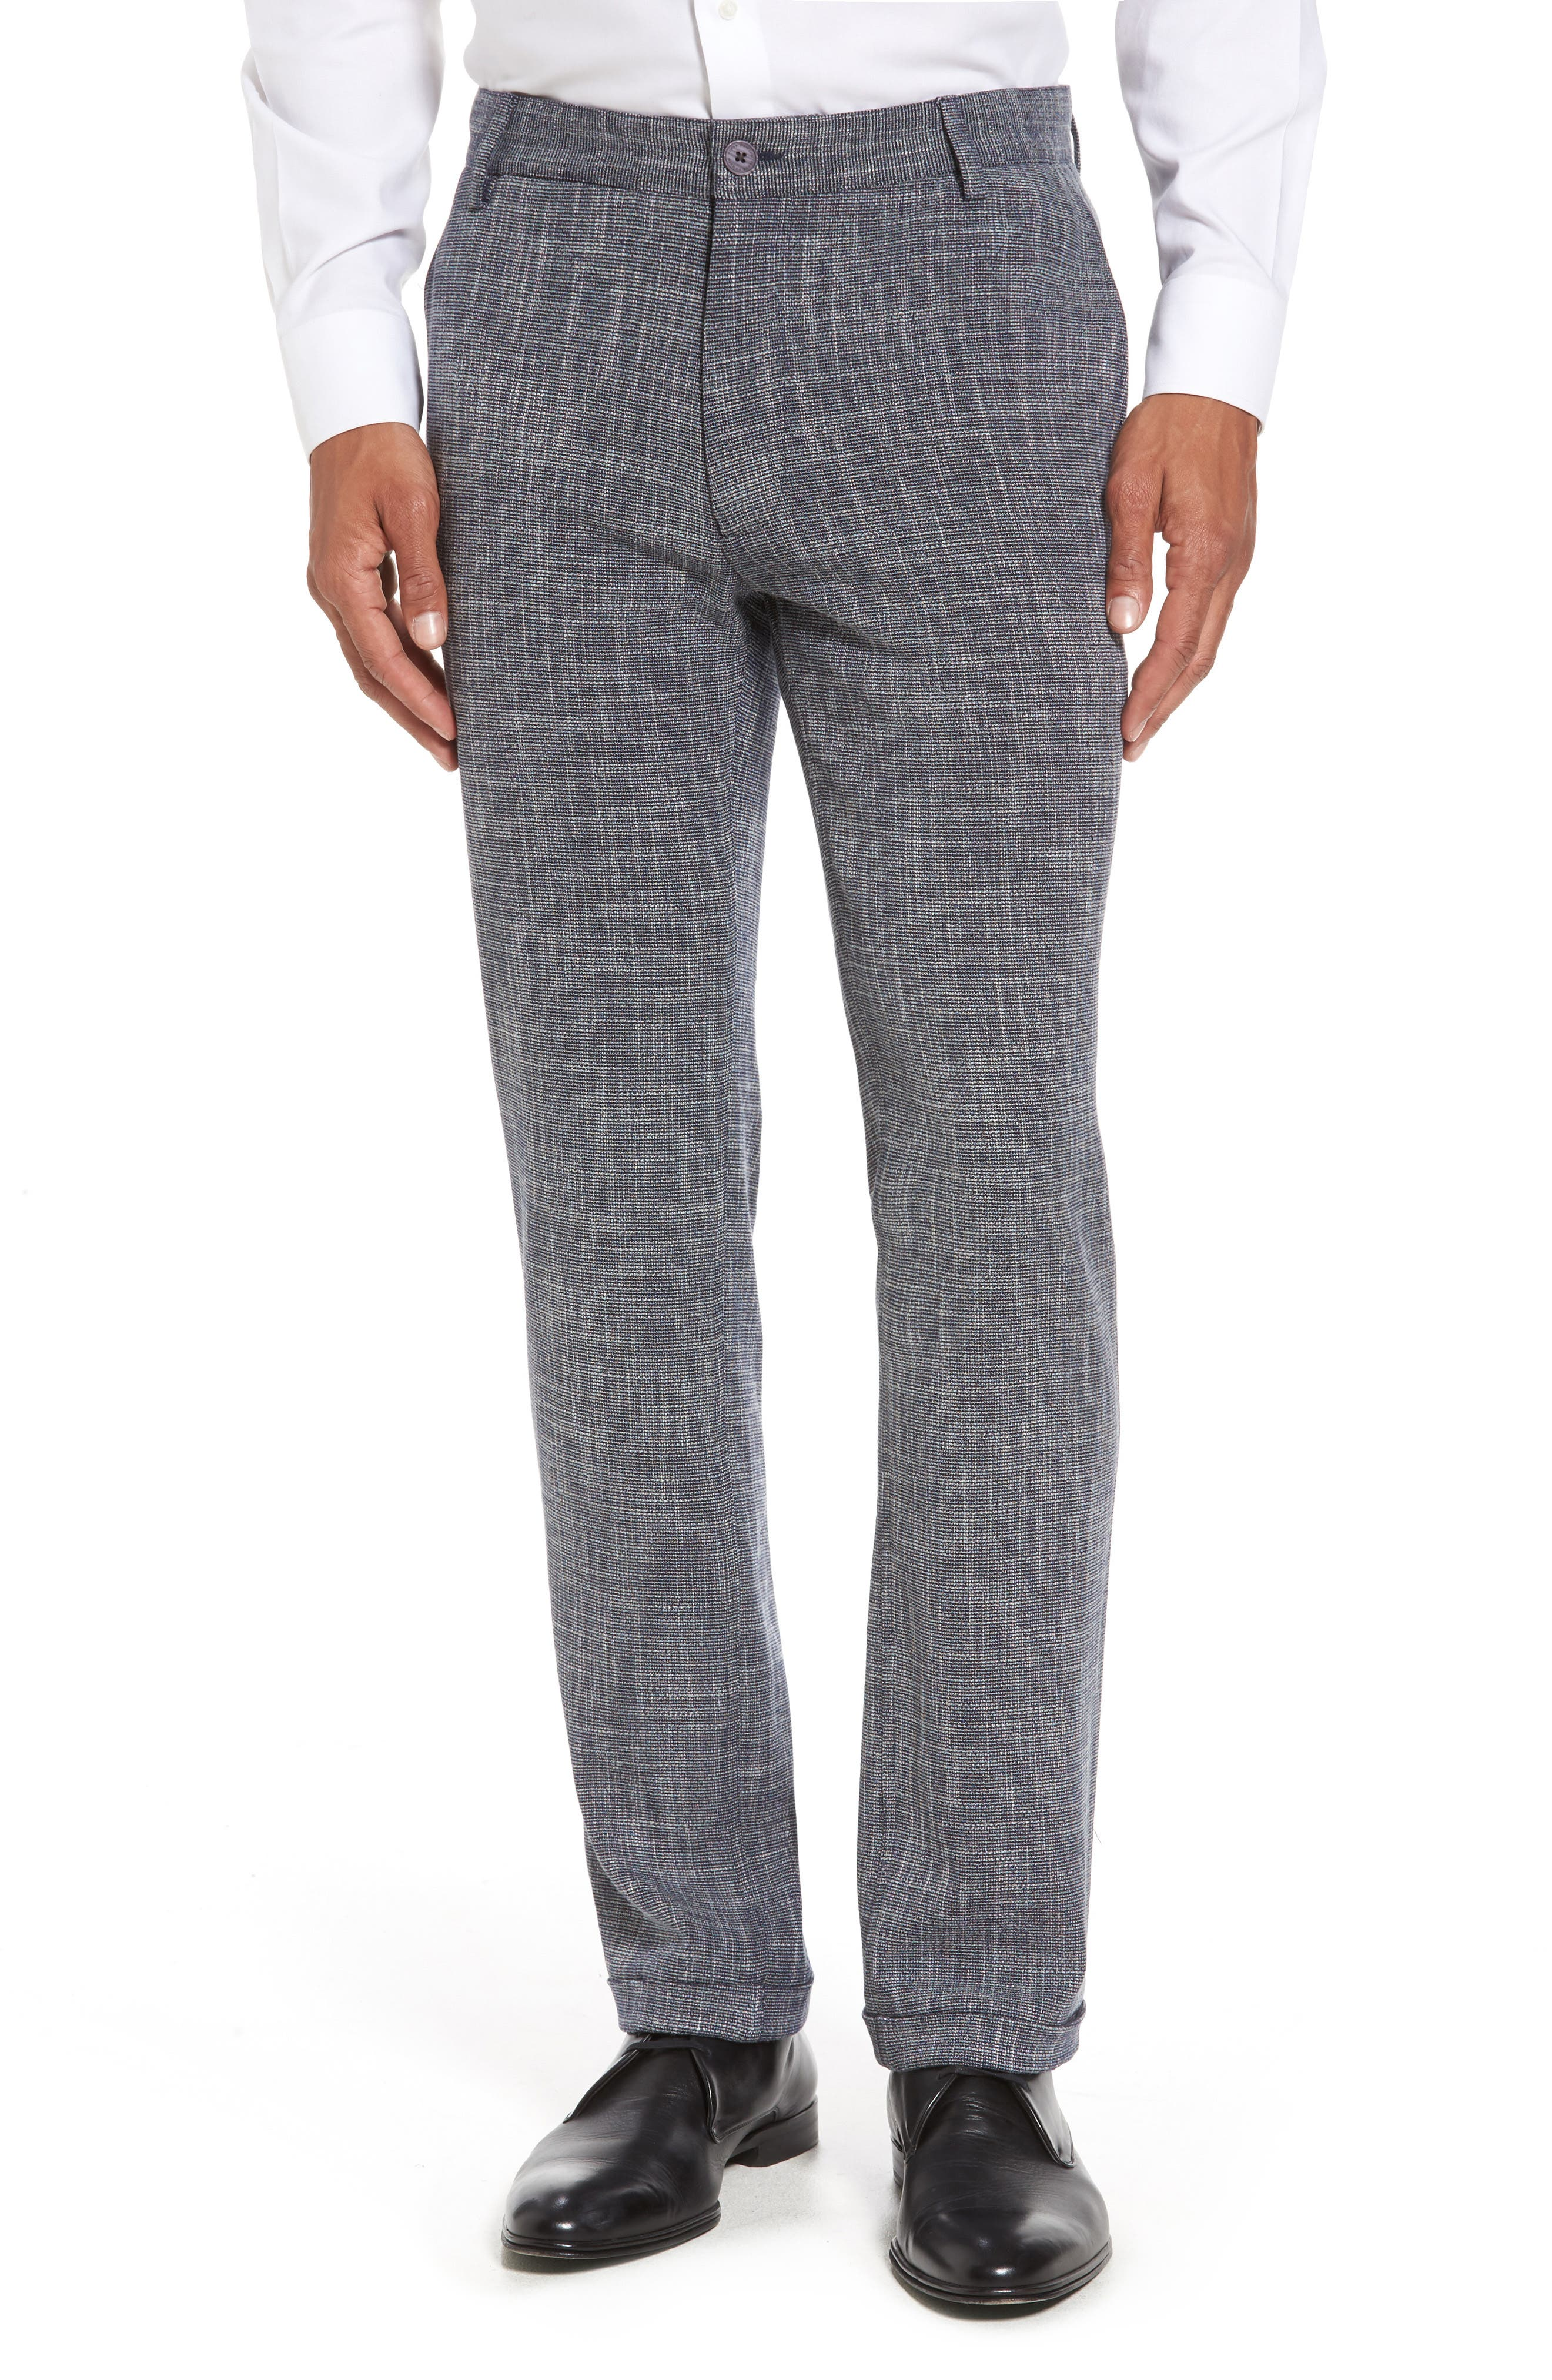 Main Image - Vince Camuto Slim Fit Cuffed Pants